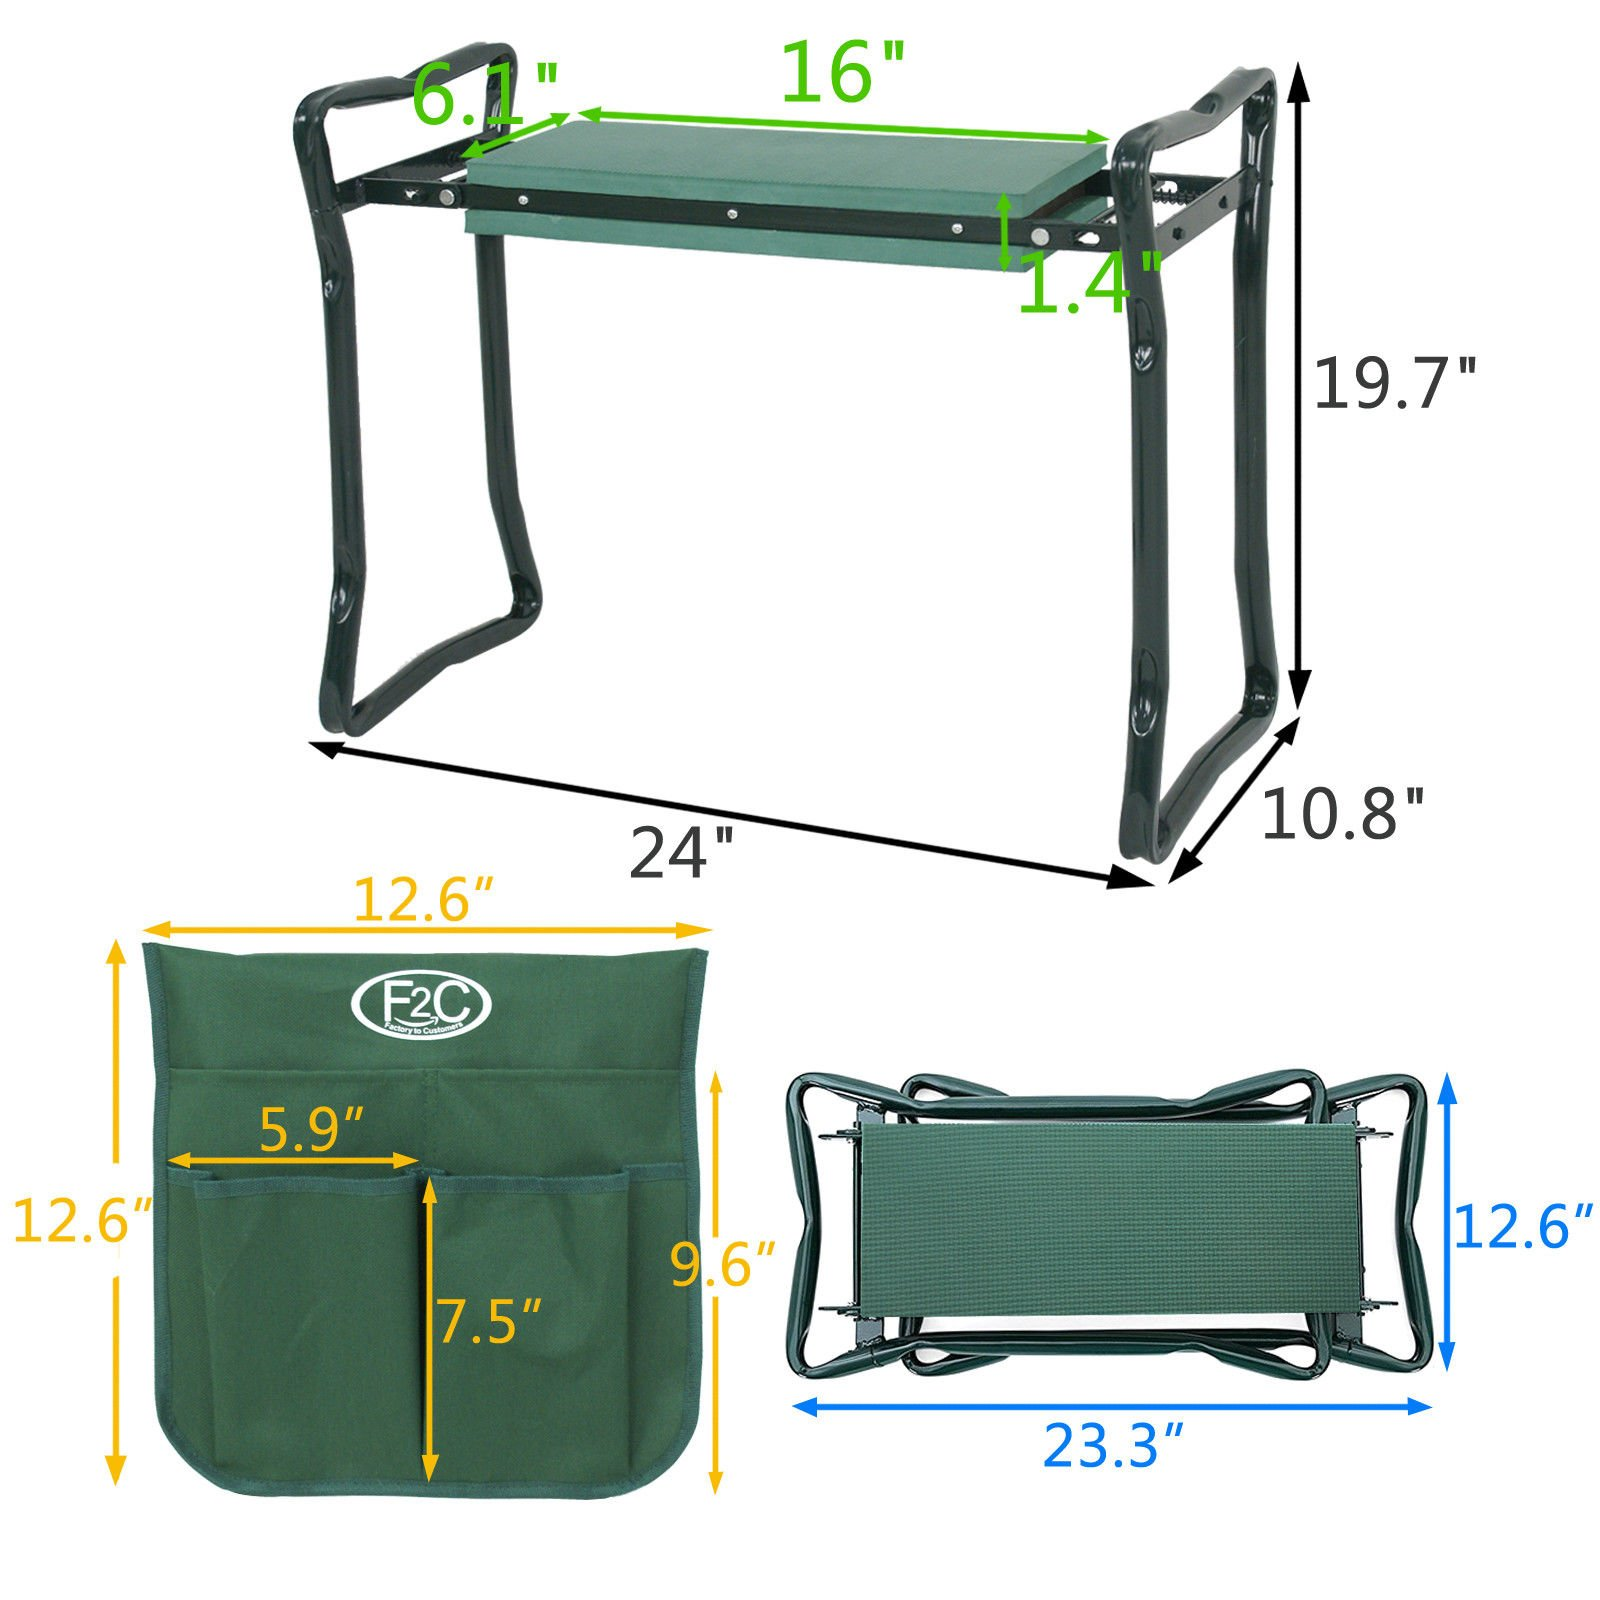 (GG) Garden Kneeler Seat w/EVA Folding Portable Bench Kneeling Pad and Tool Pouch New by Good Grannies by (GG) (Image #1)